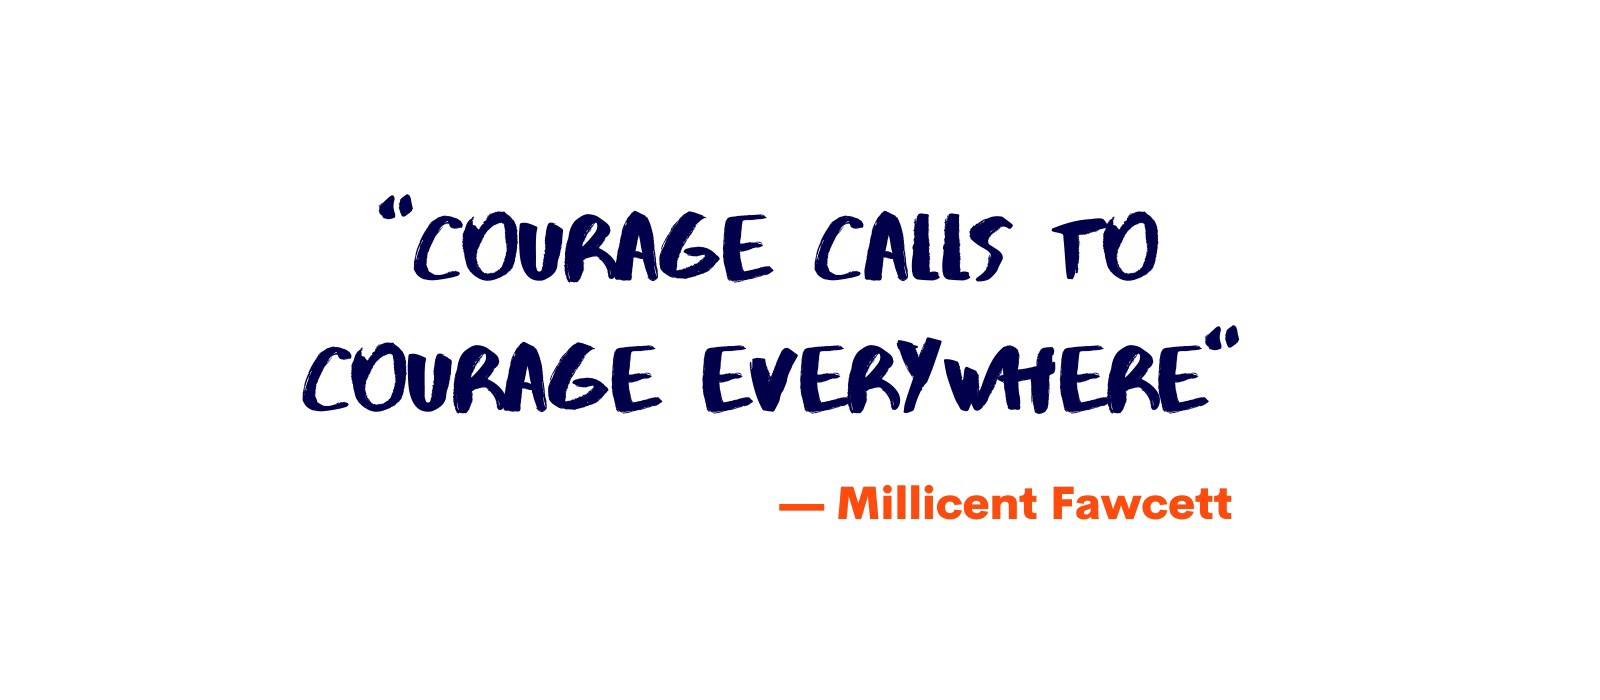 """Courage calls to courage everywhere"" -Millicent Fawcett"